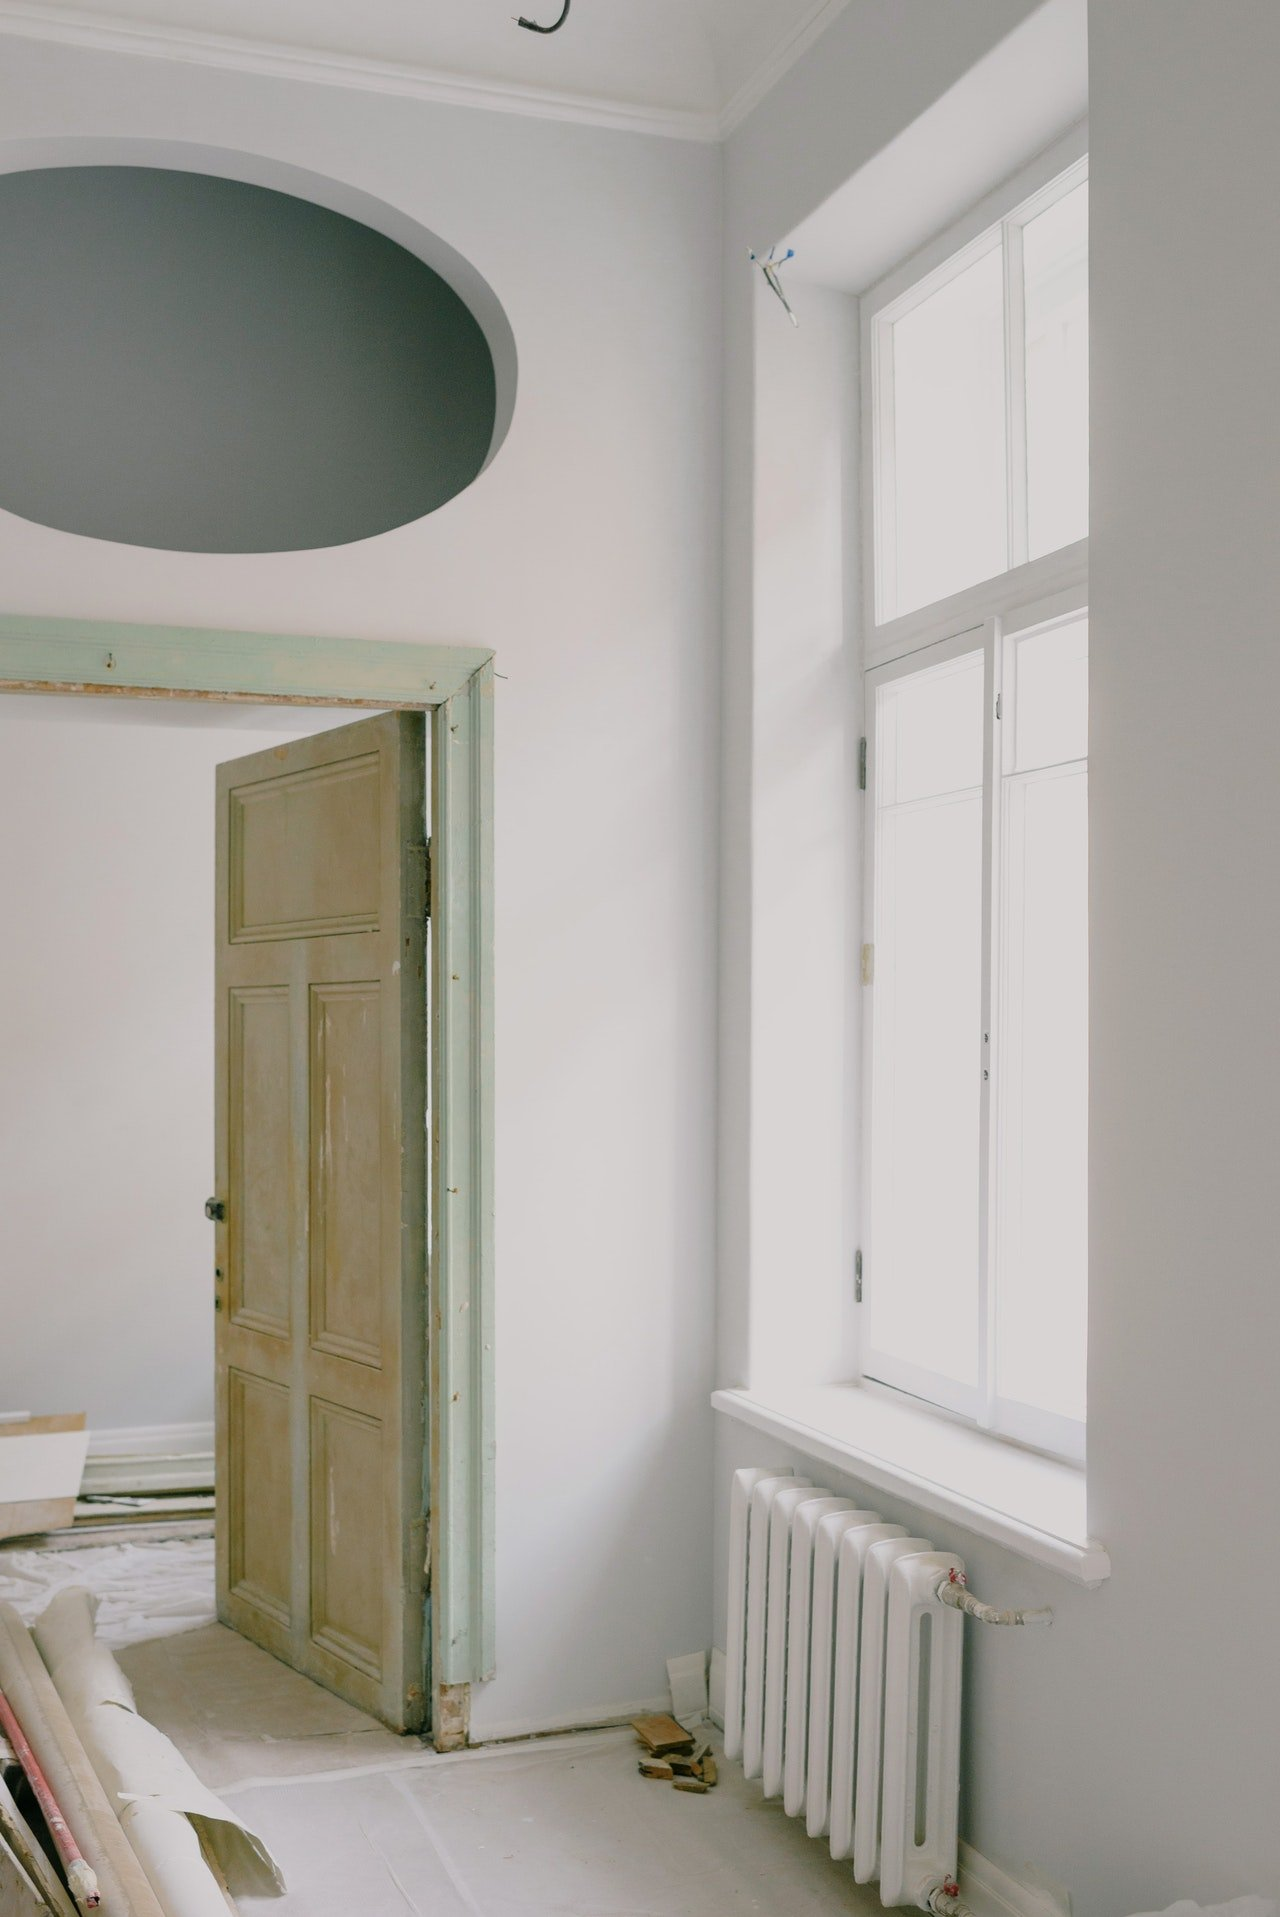 I started renovating the house on my own.   Source: Pexels